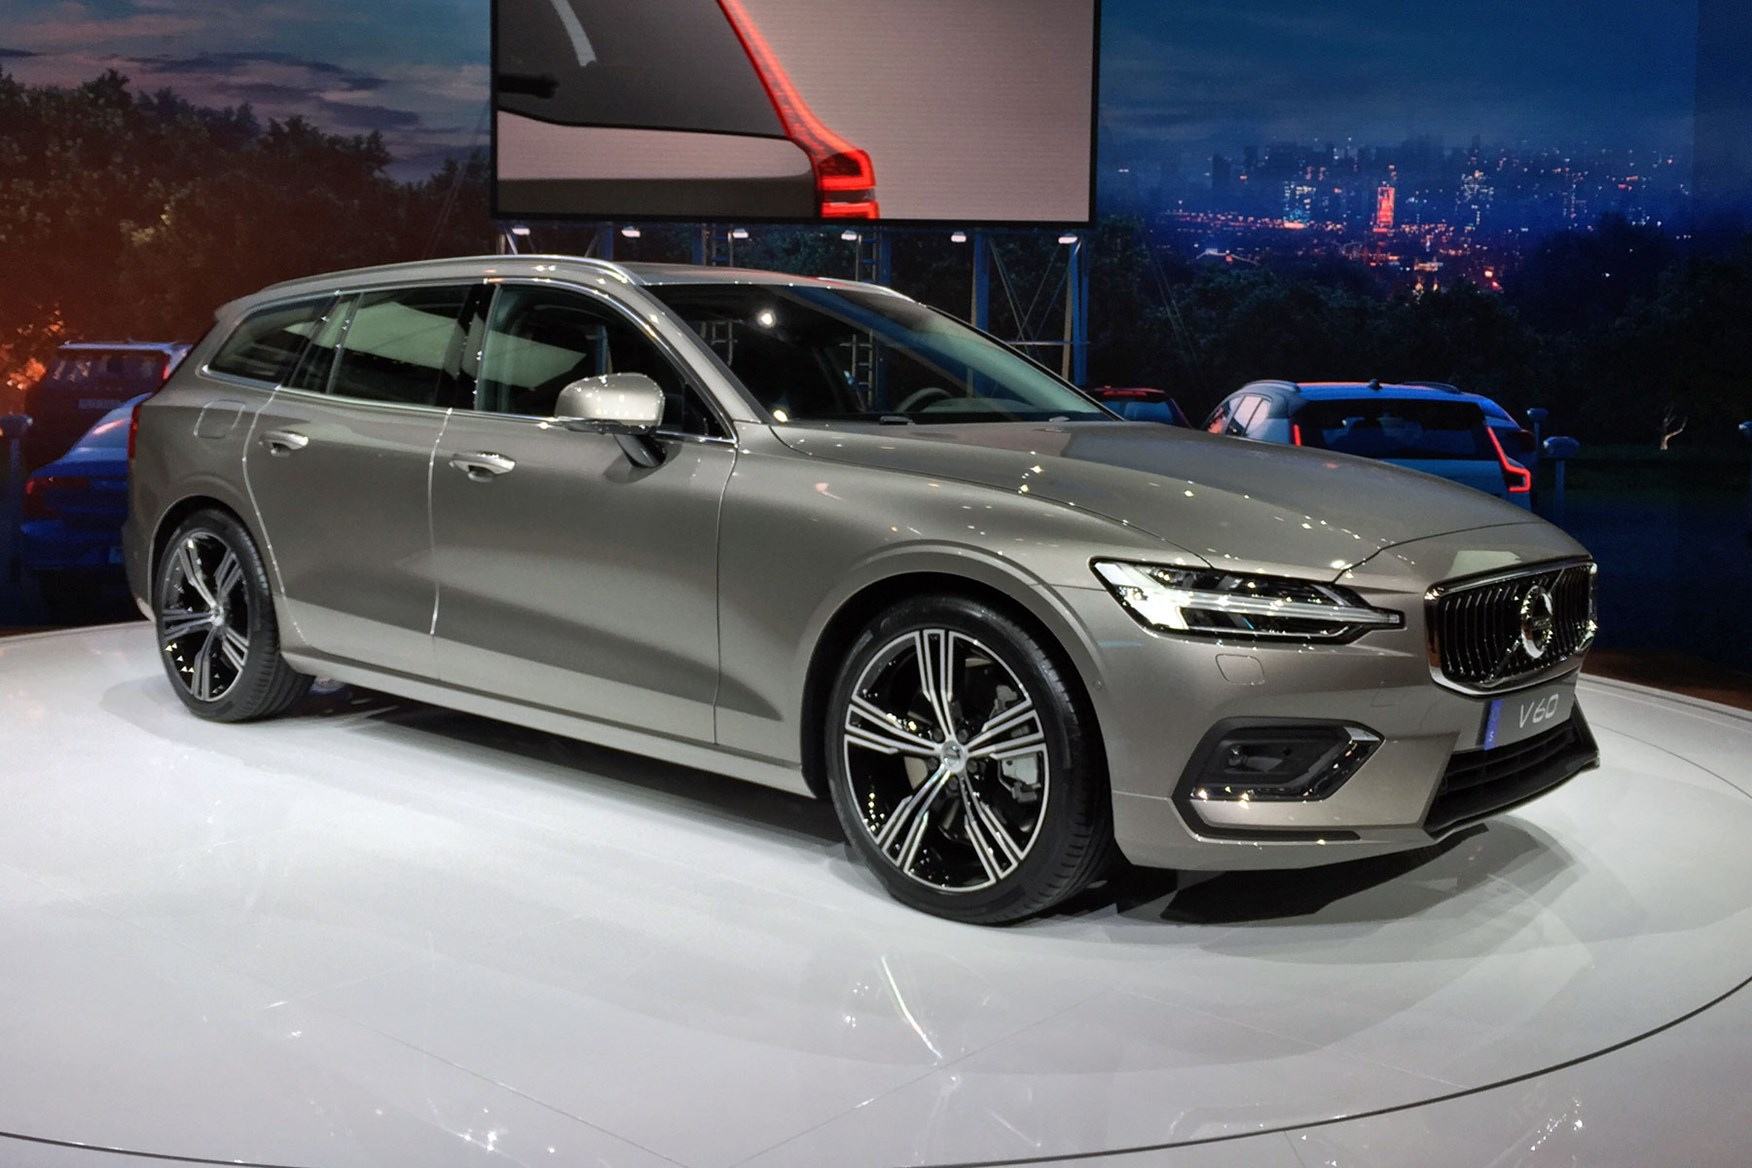 2019 Volvo S60 Release Date Top Upcoming Cars 2020